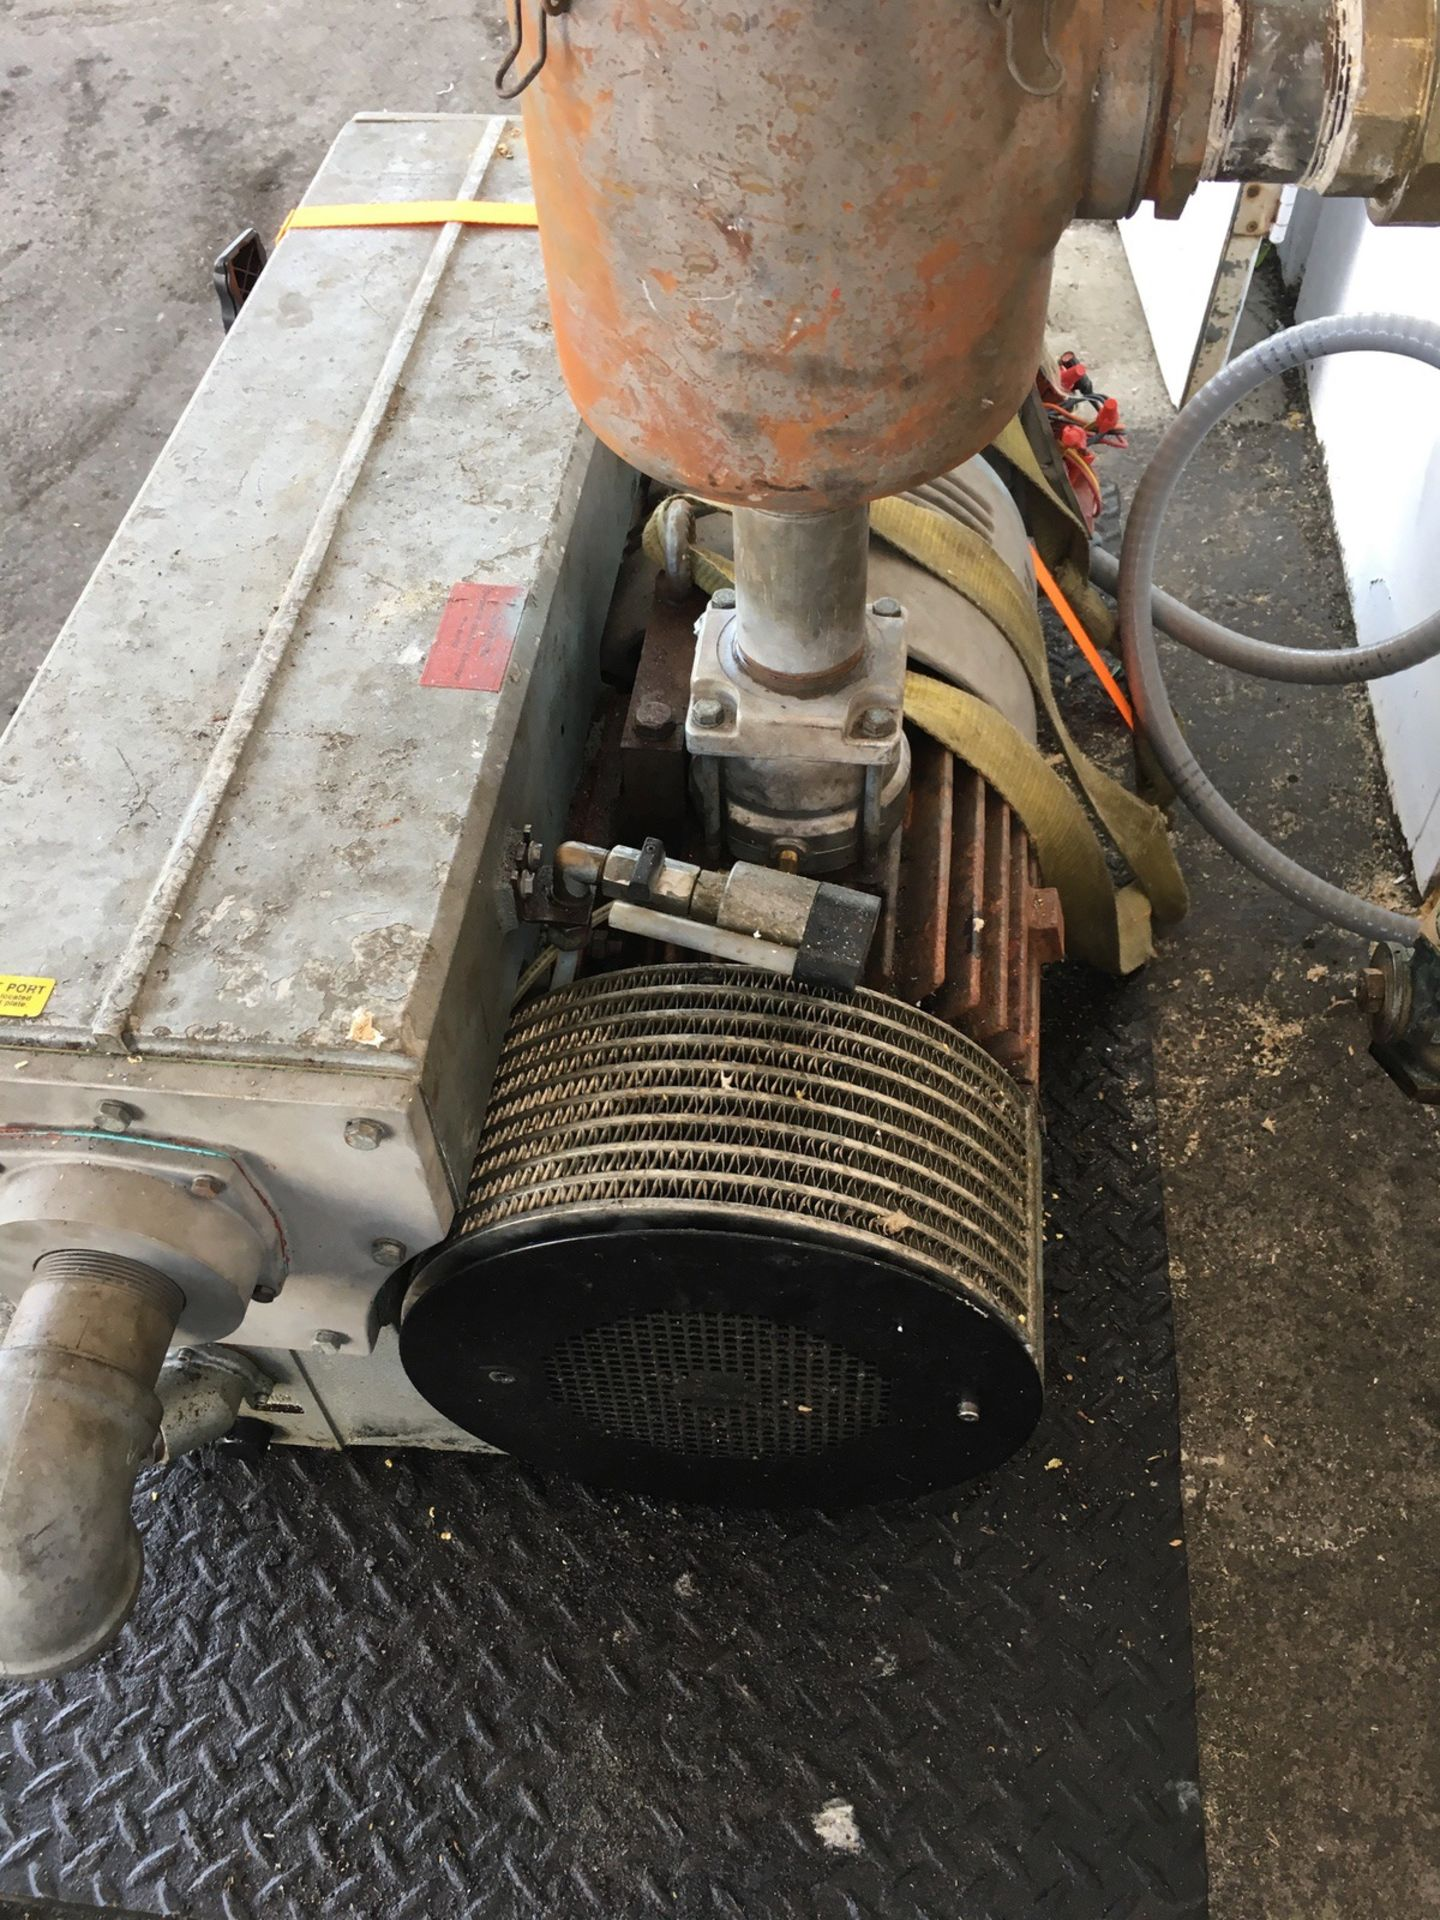 Lot 53 - Busch R5 Vacuum Pump, 10 HP, 180 CFM Displacement, 0.5 Torr Vacuum | Rig Fee: No Charge